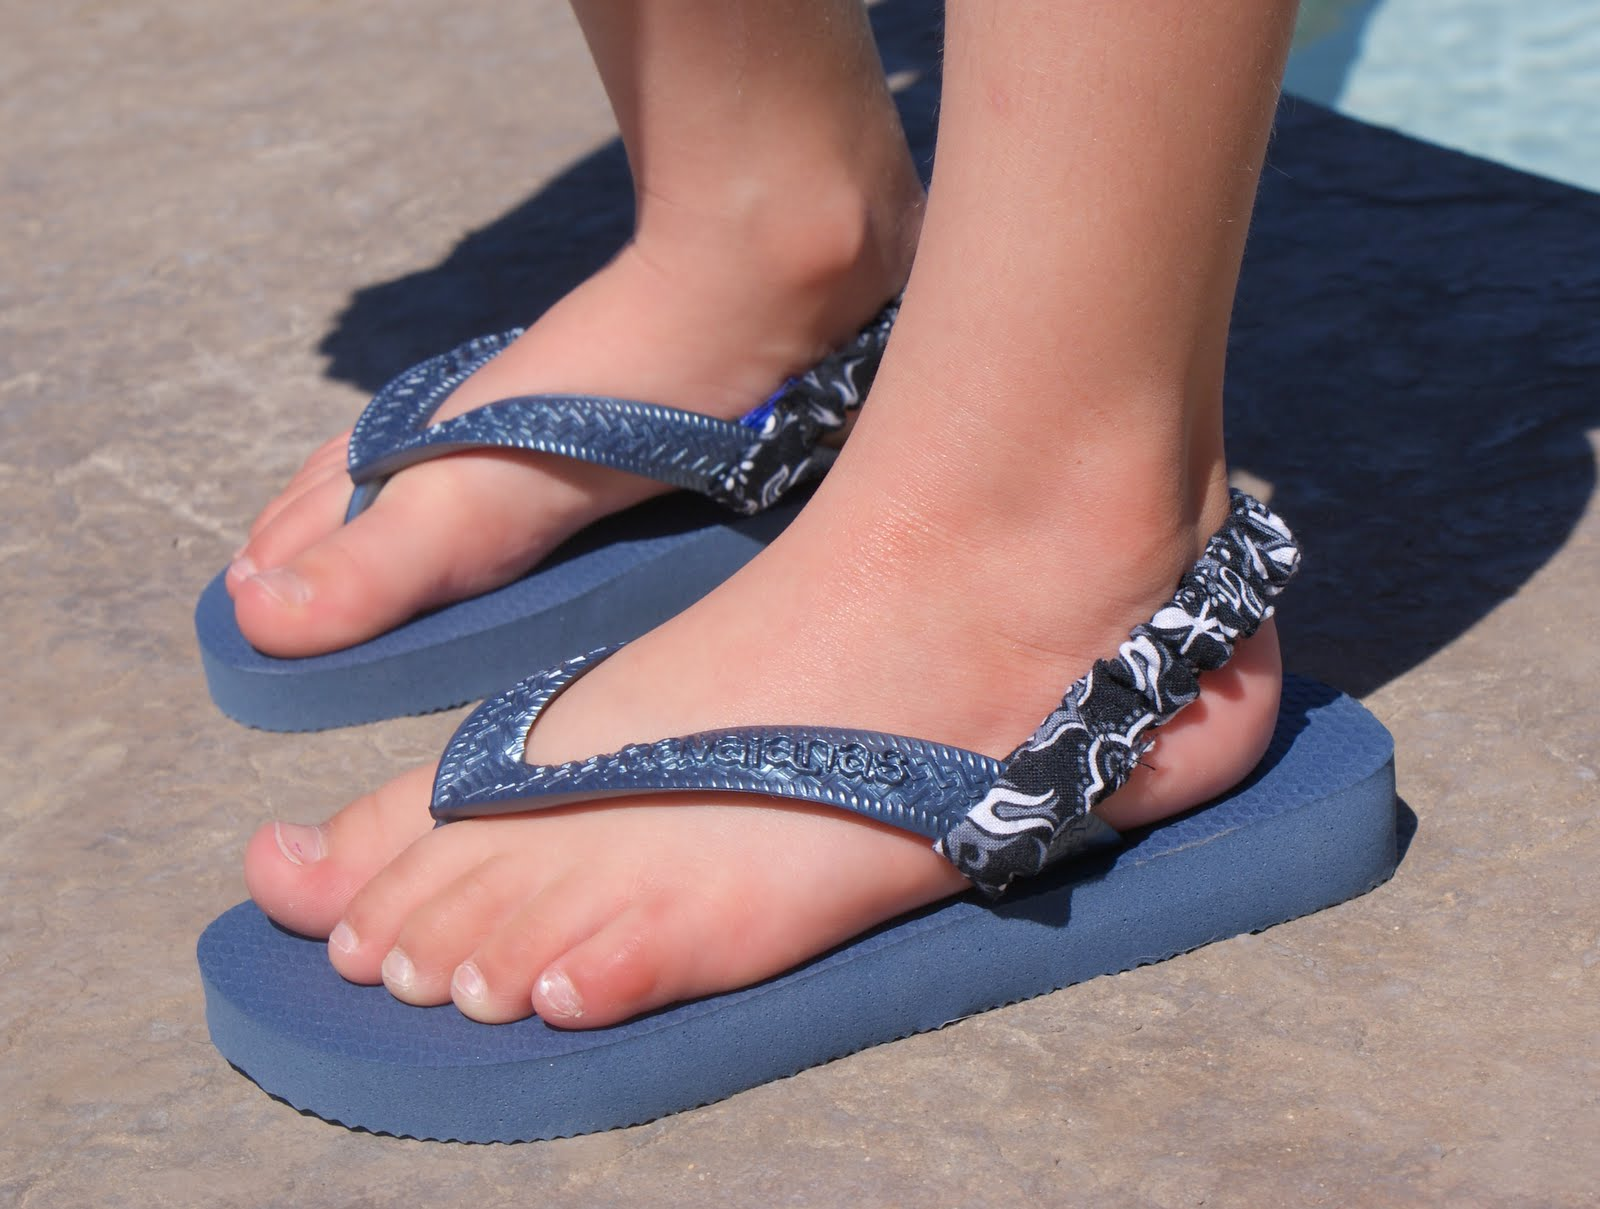 Flops candid teen girl feet much the